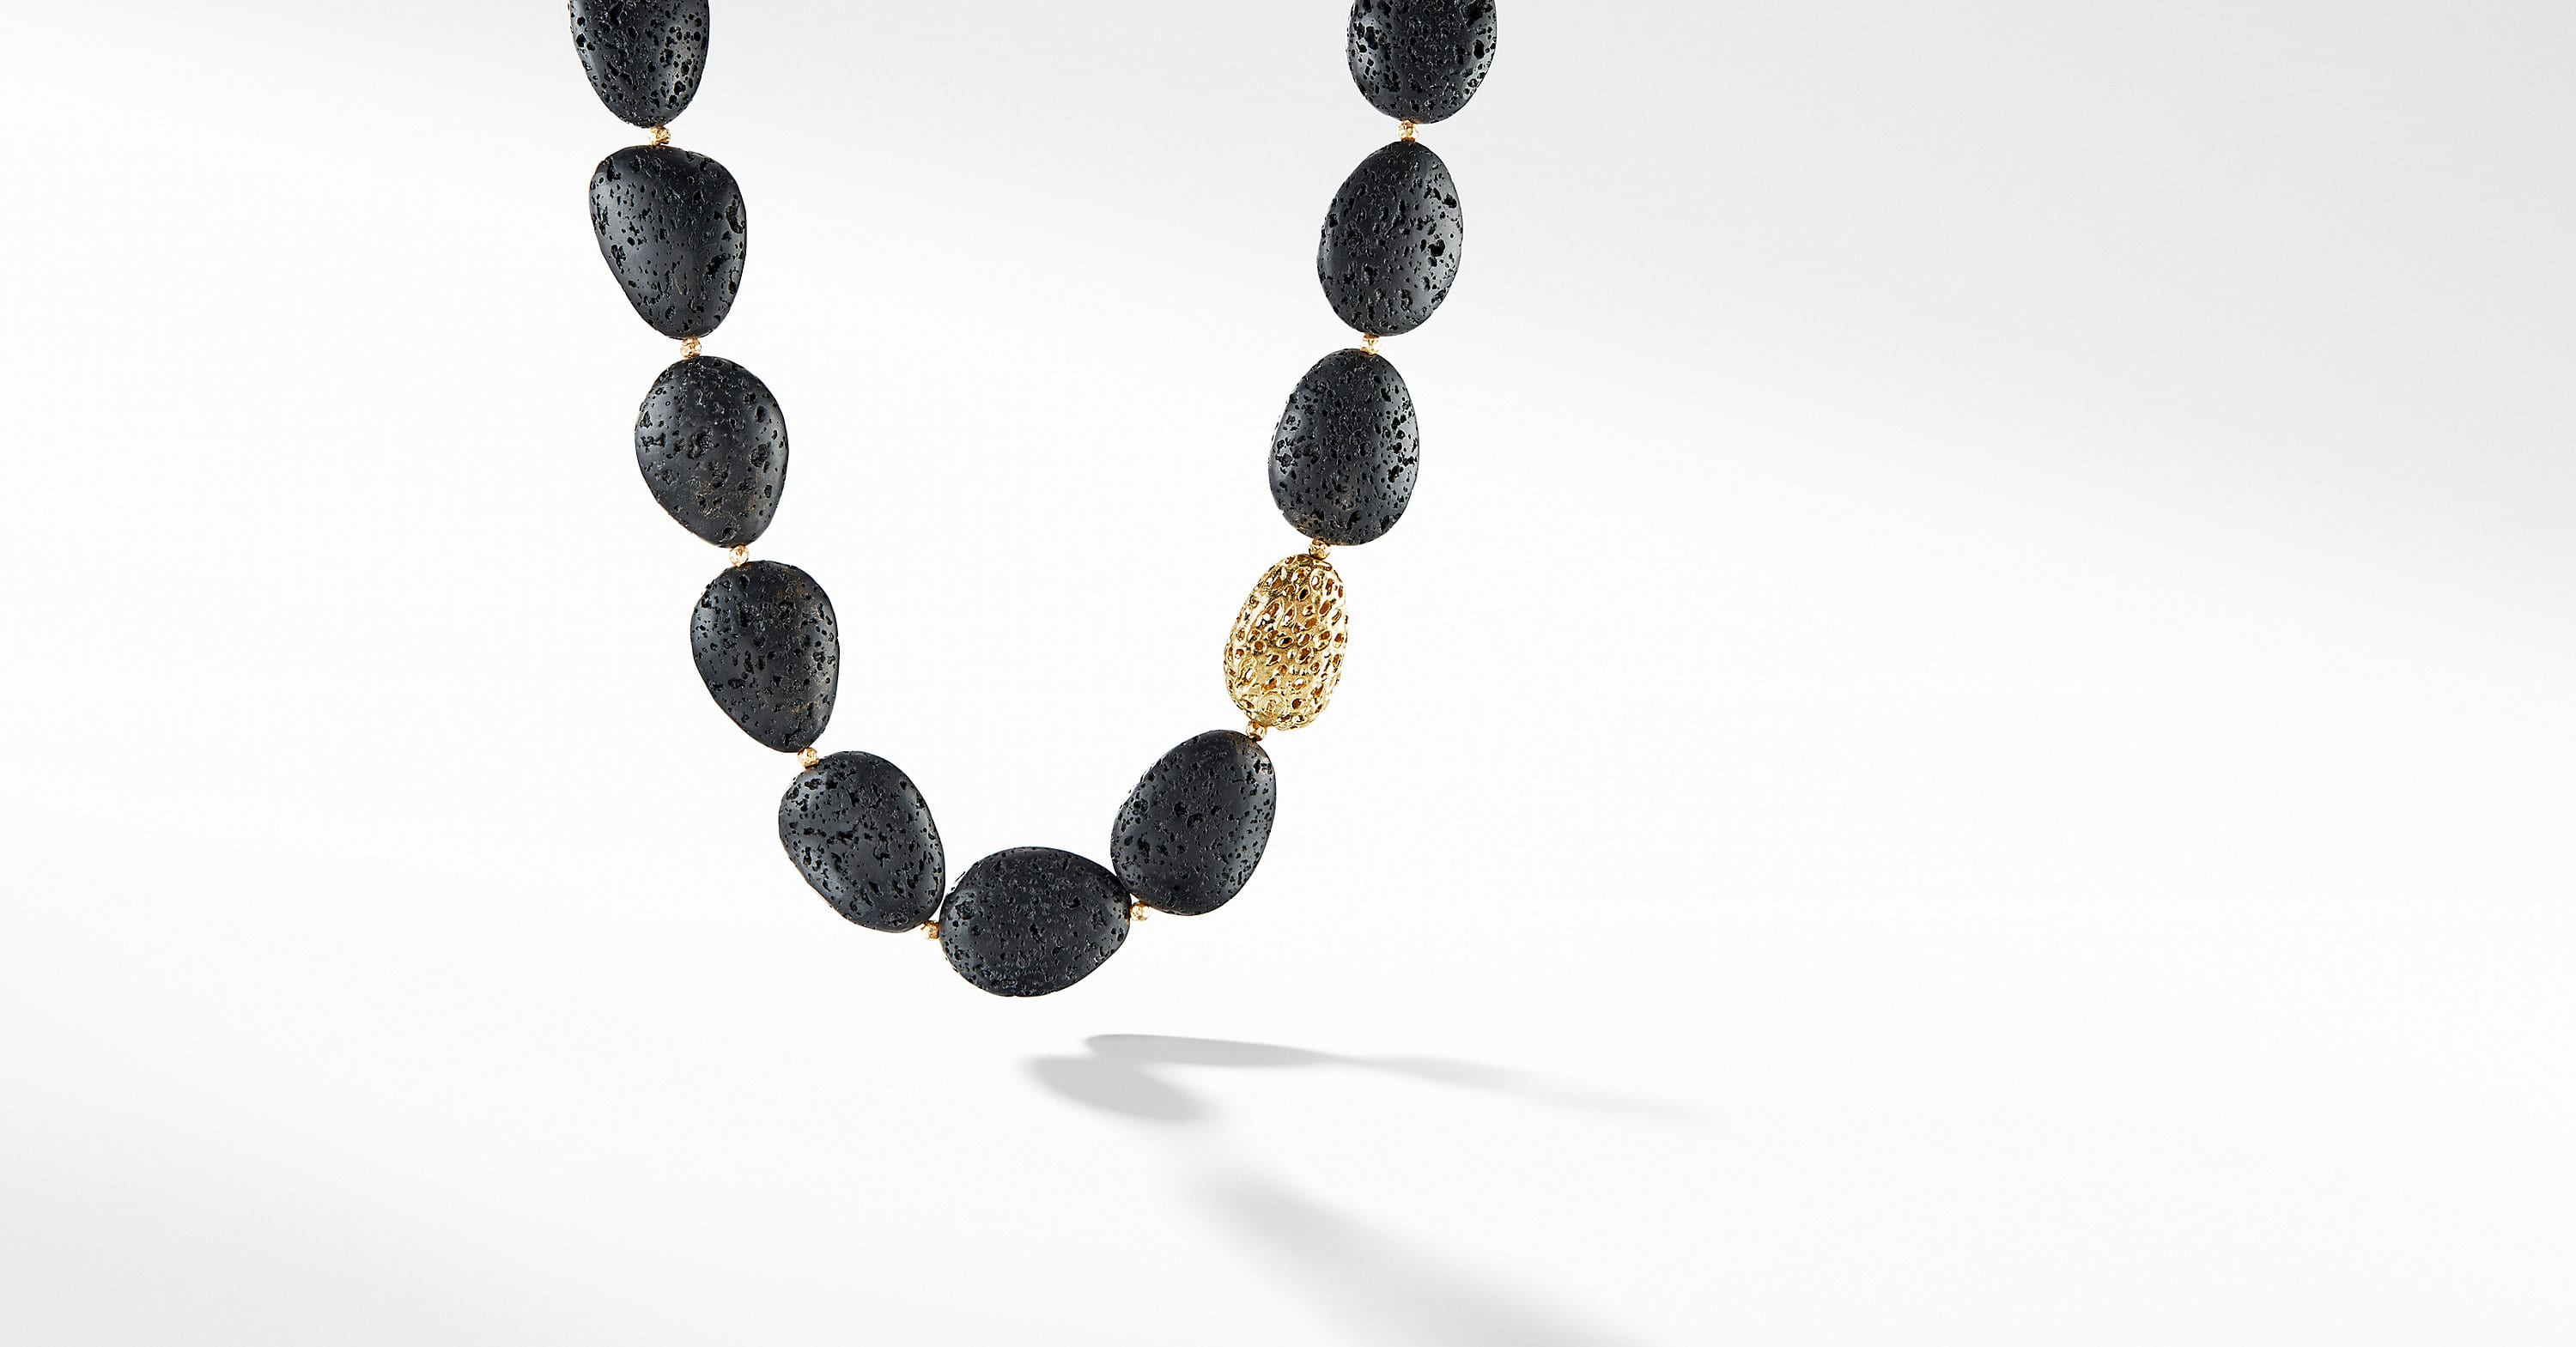 DY Signature Bead Necklace with 18K Gold